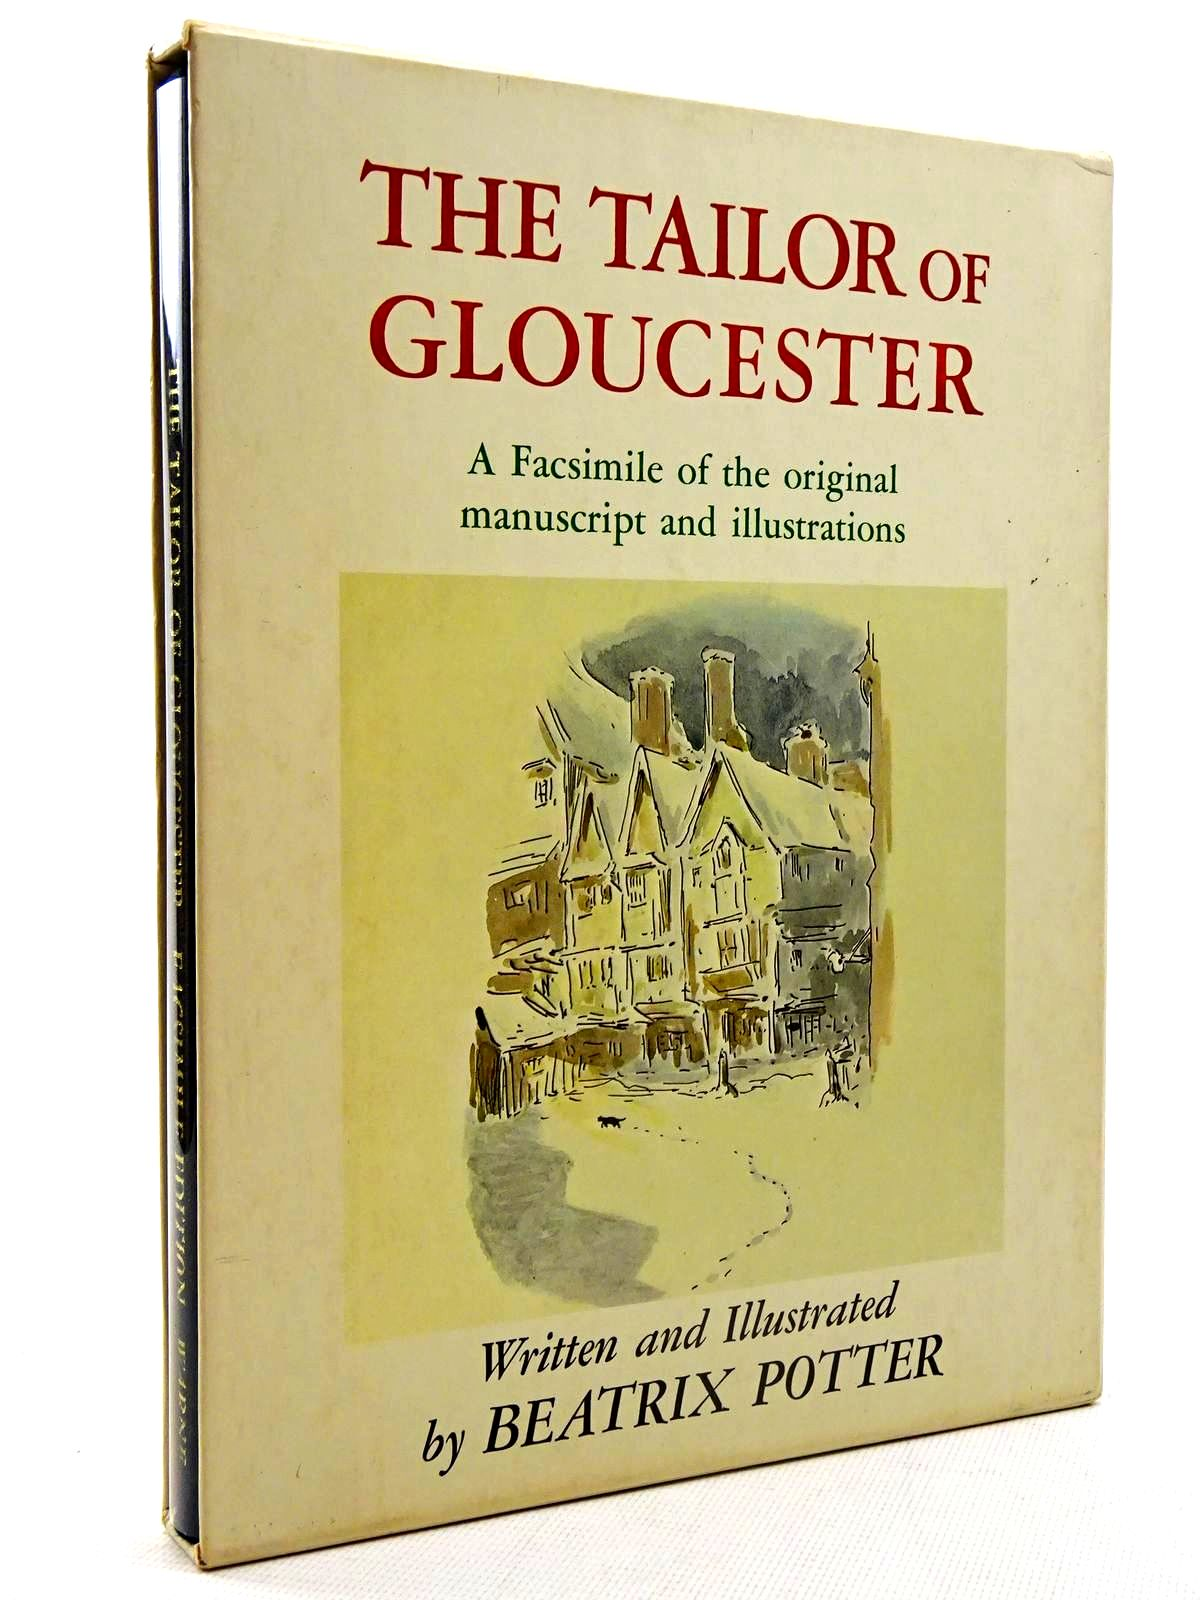 Photo of THE TAILOR OF GLOUCESTER written by Potter, Beatrix illustrated by Potter, Beatrix published by Frederick Warne & Co. Inc. (STOCK CODE: 1317403)  for sale by Stella & Rose's Books